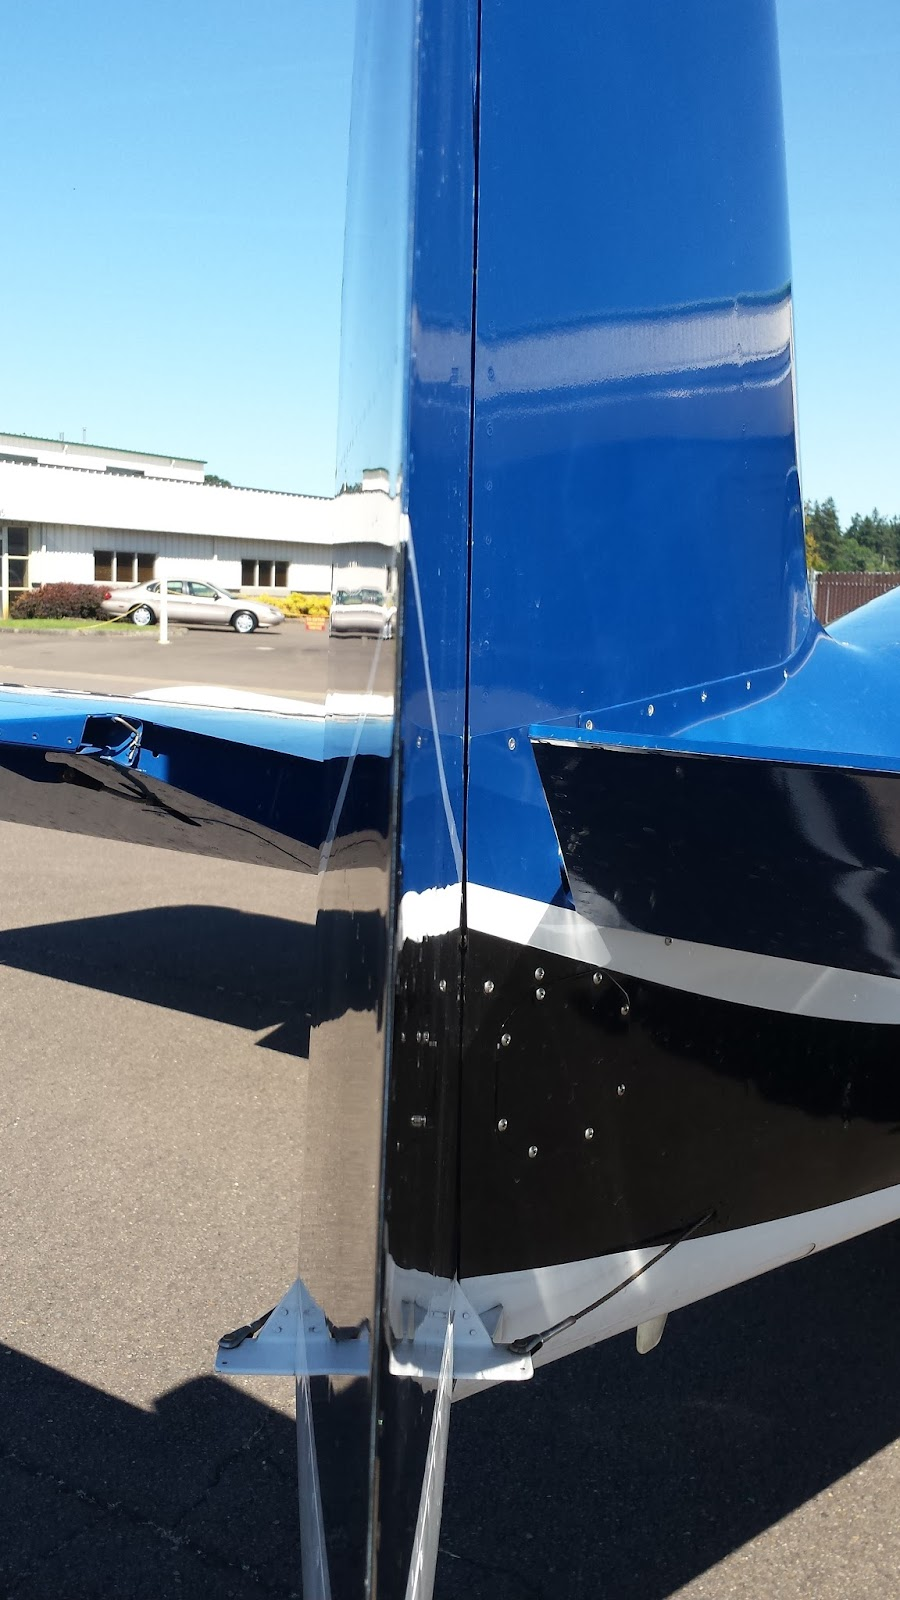 Rudder from right